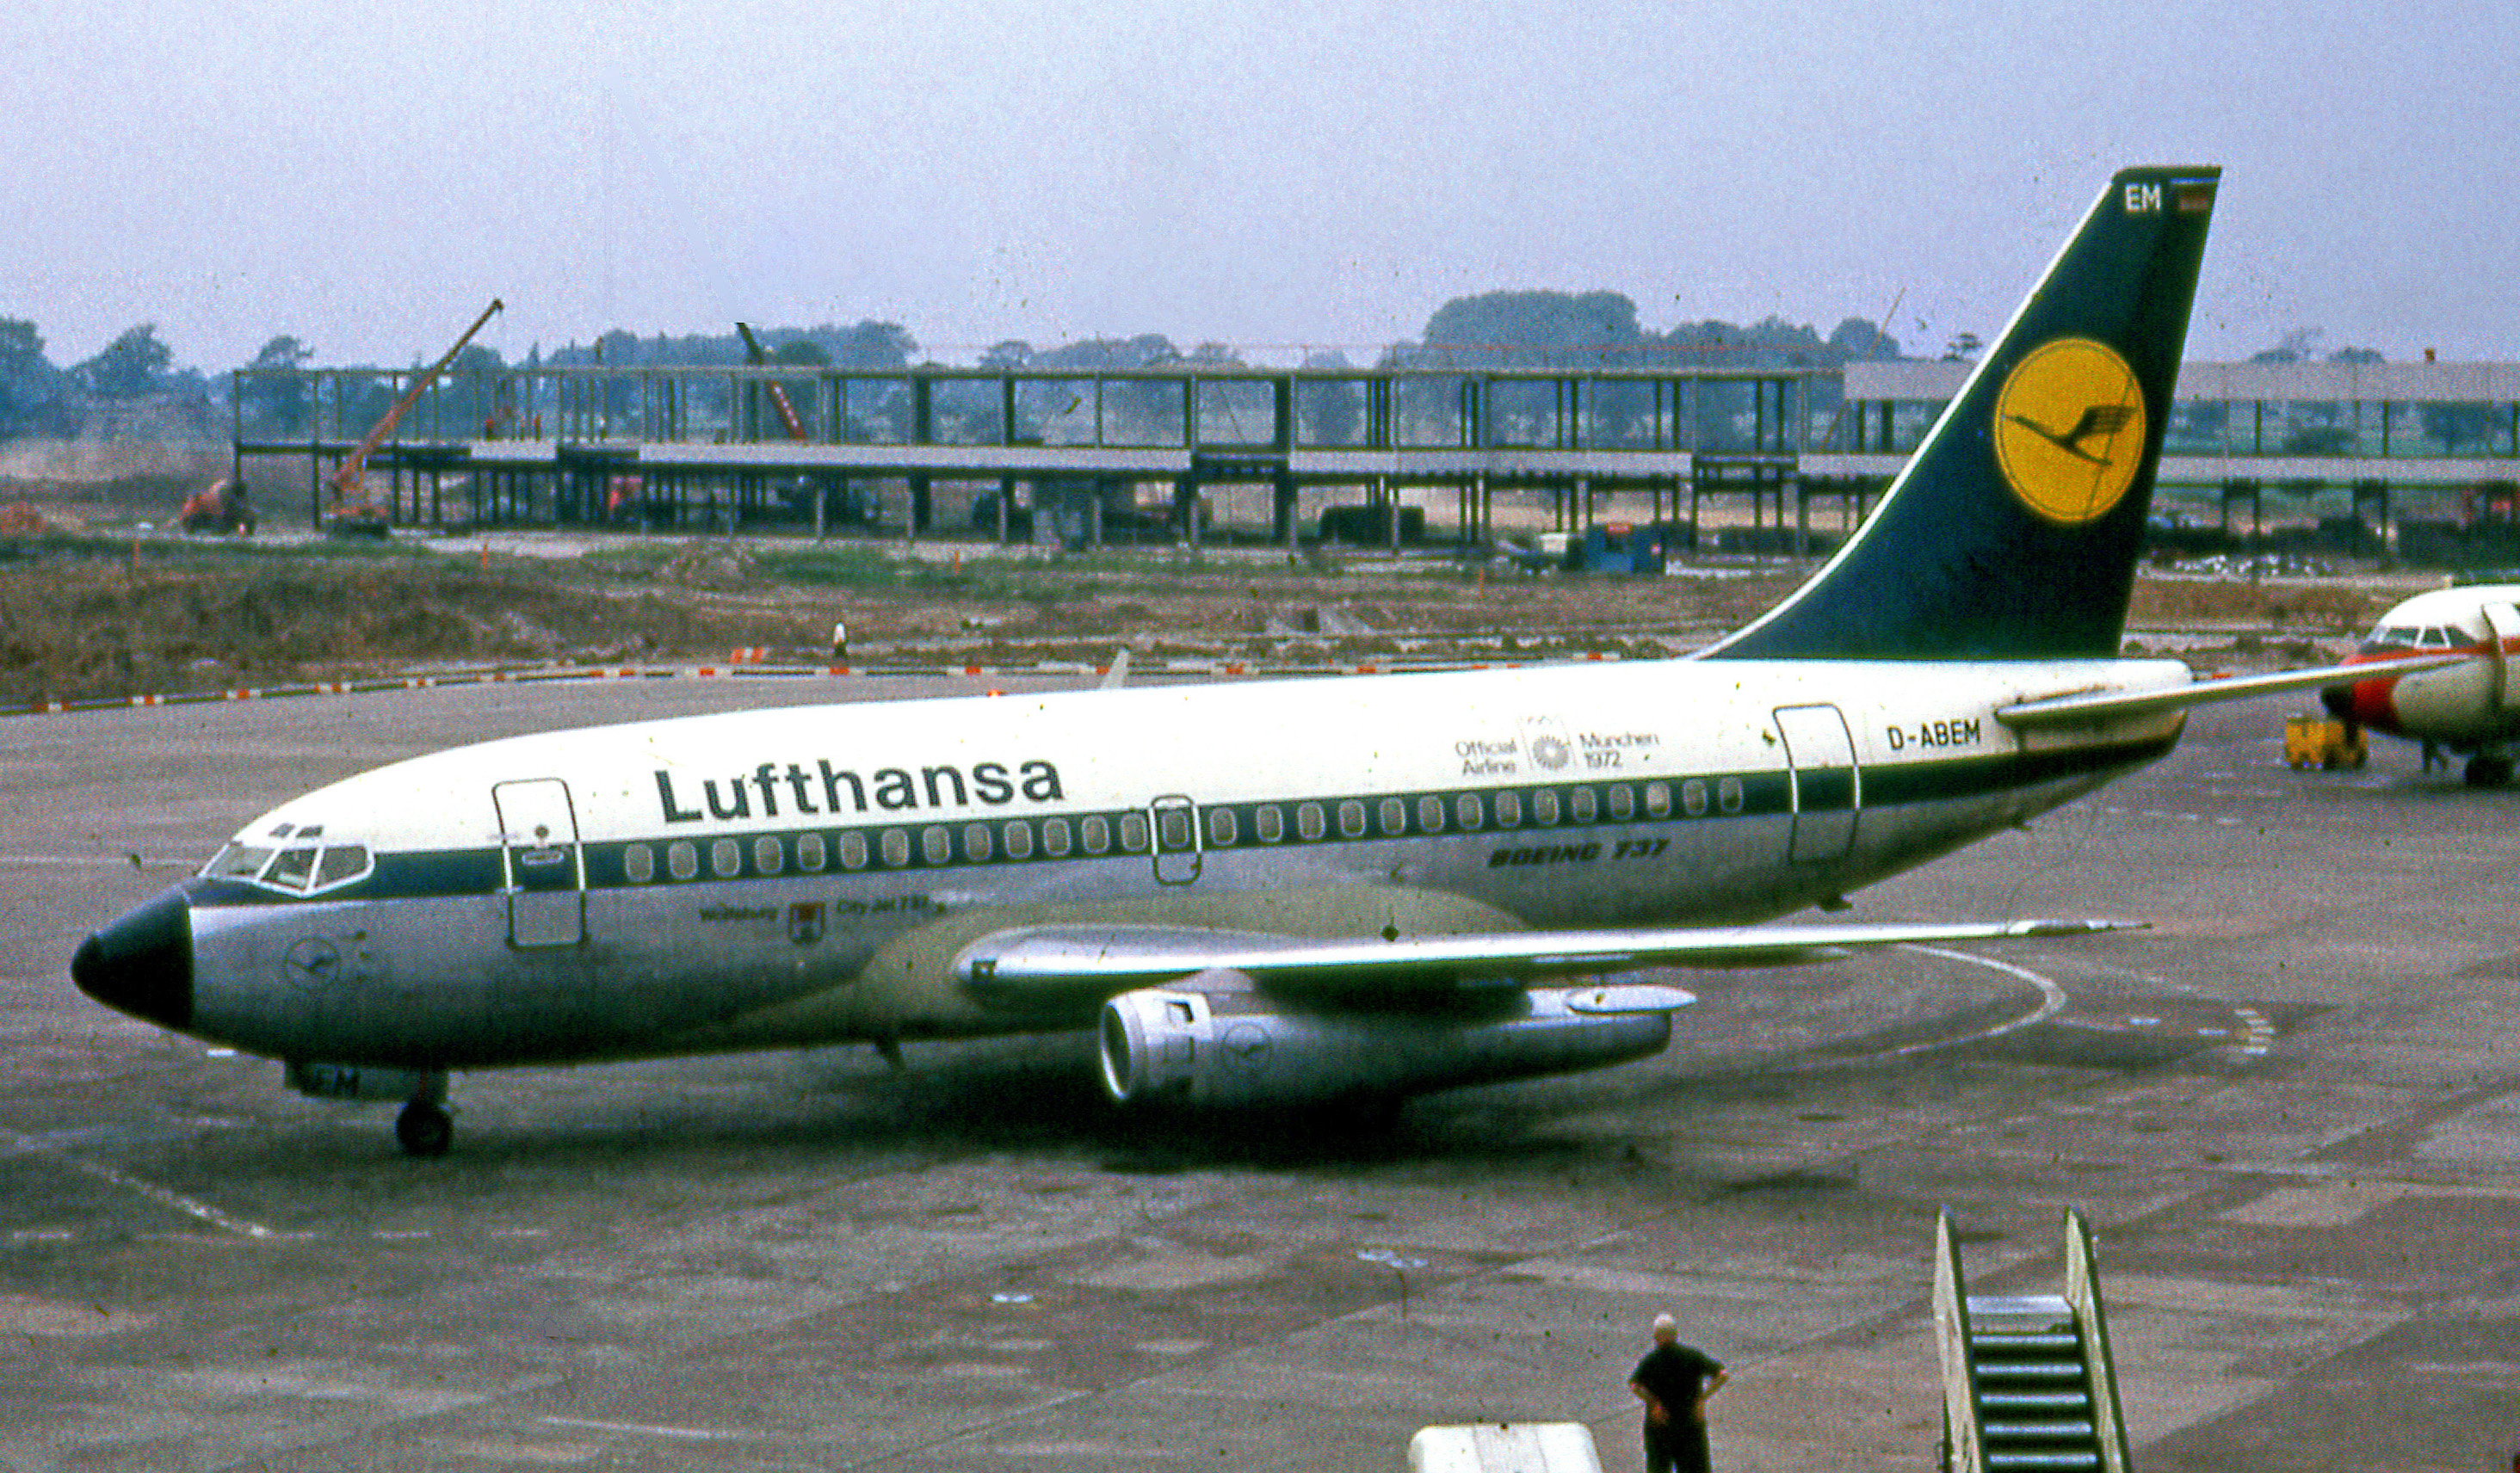 Lufthansa_Boeing_737-100_at_Manchester_Airport_in_1972